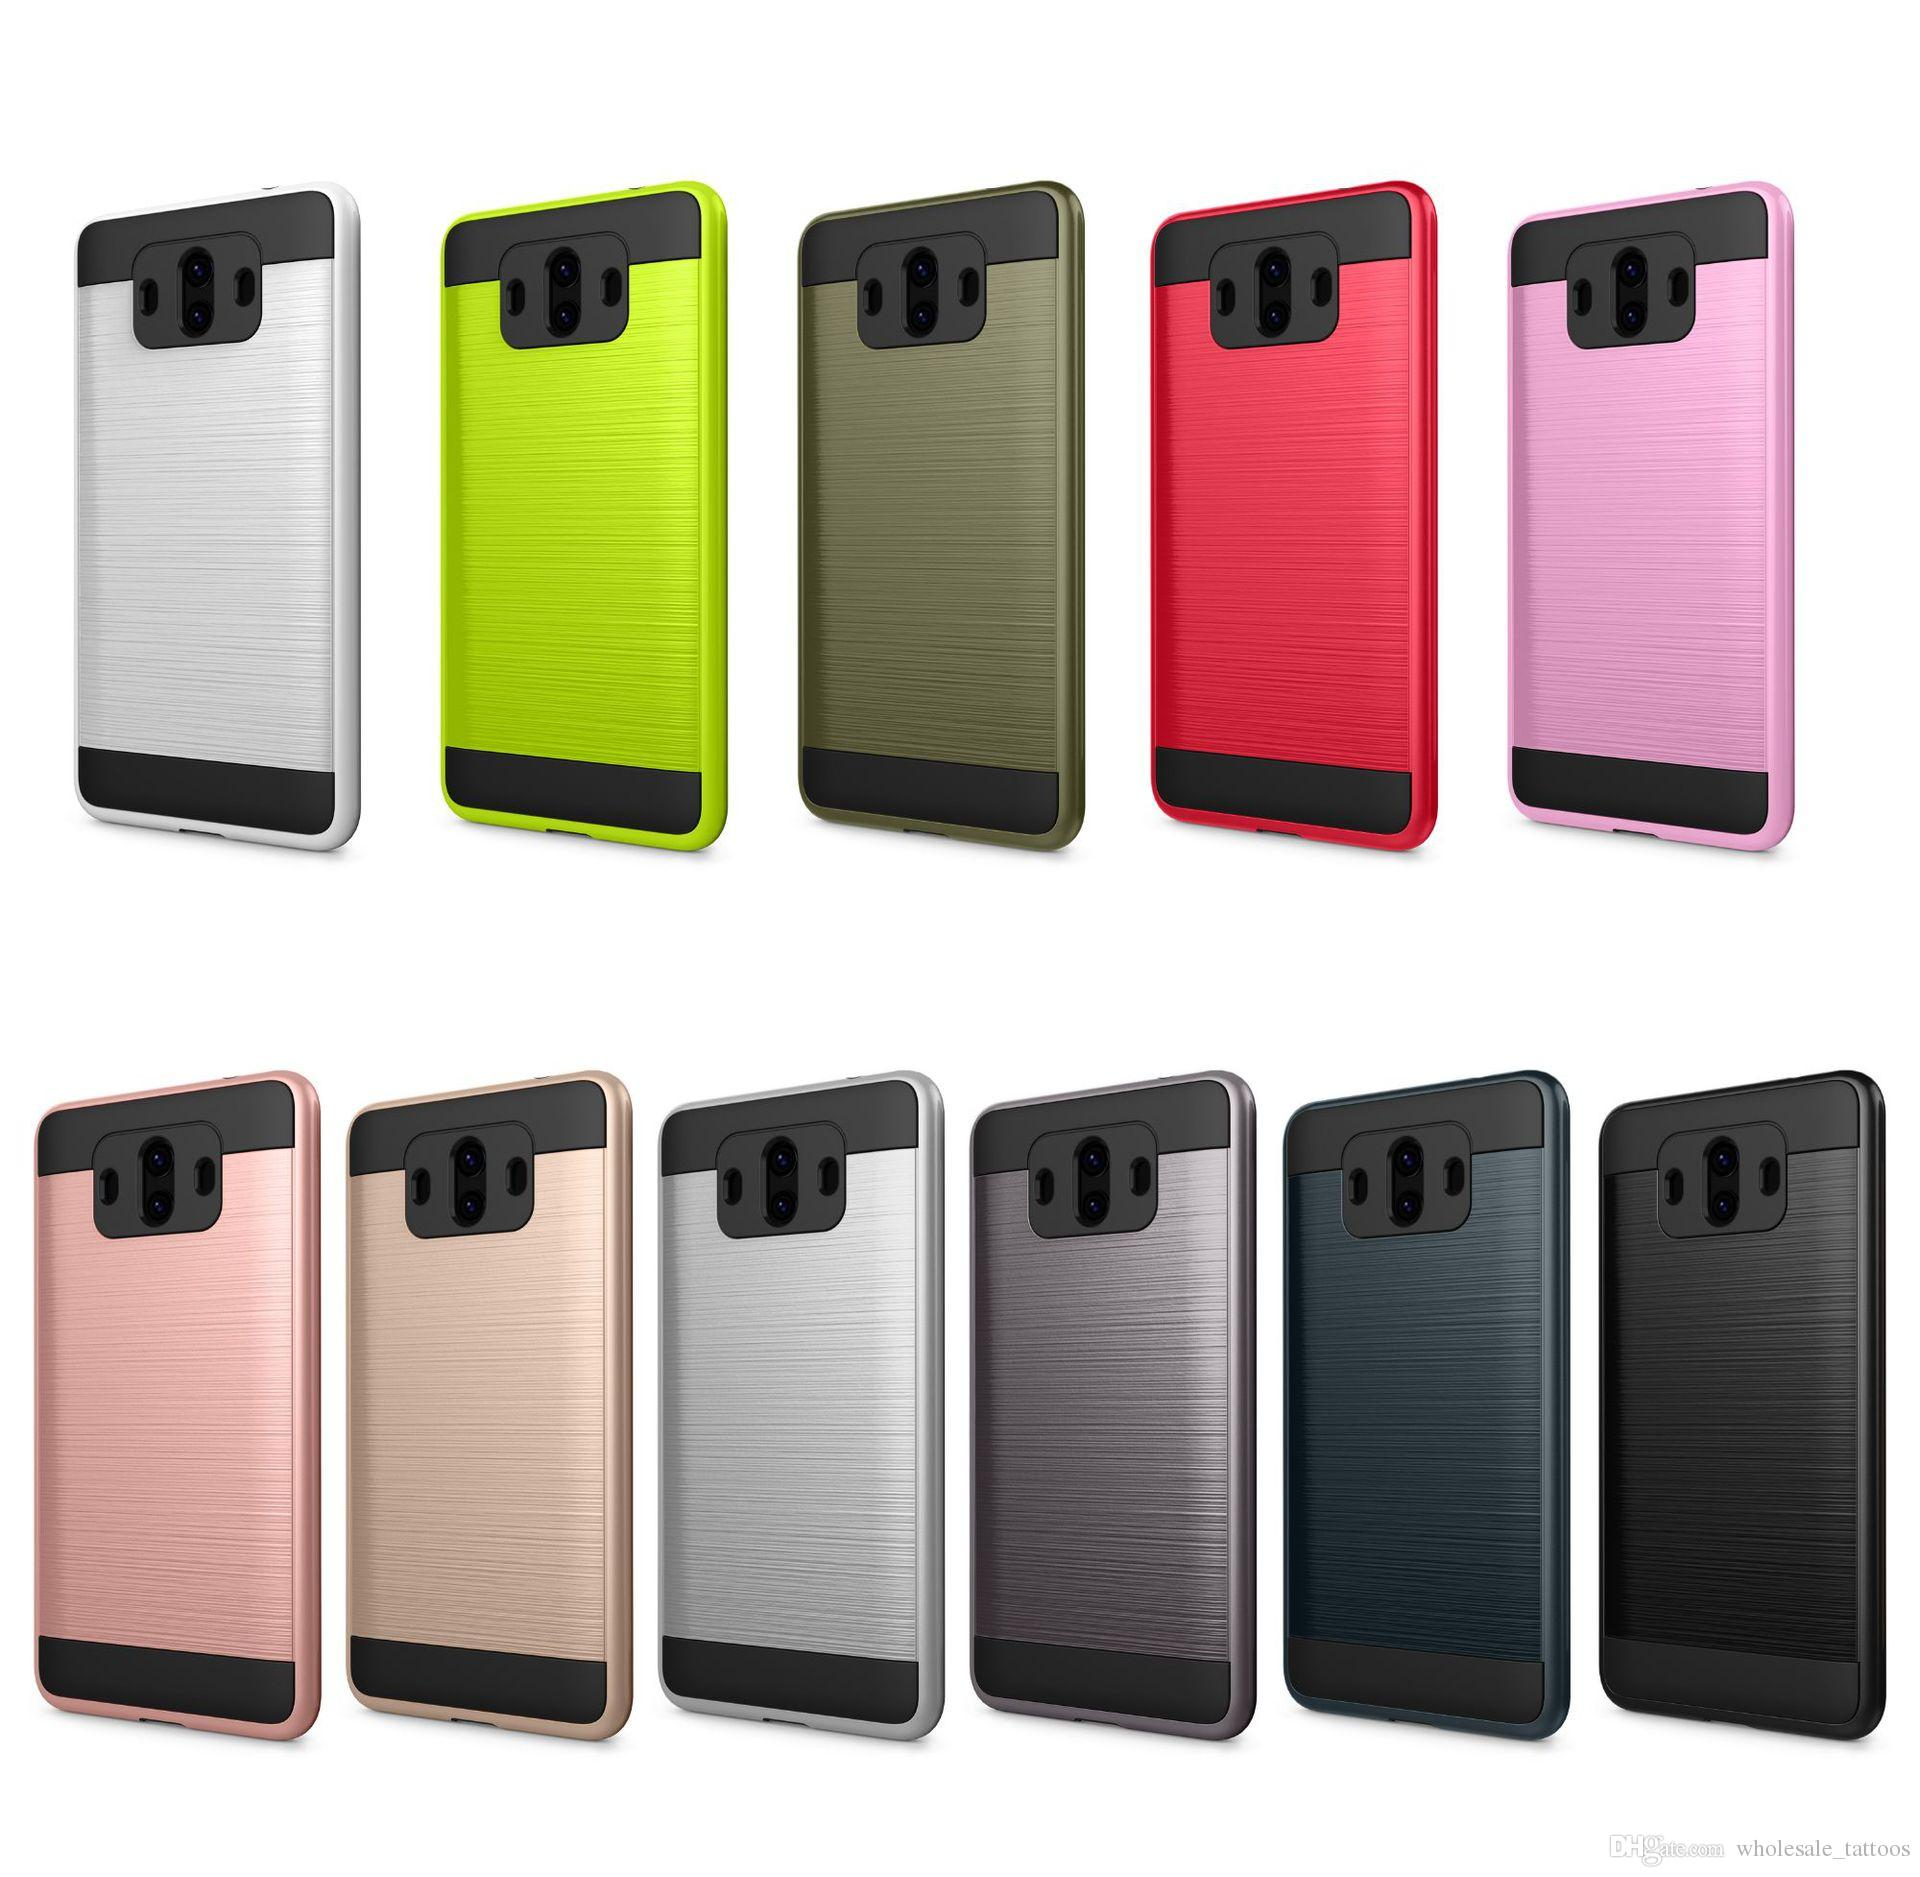 Hybrid Brushed Armor Case Soft TPU Hard PC Shockproof Cover For Huawei  Elate H1711 Mate 10 Ascend XT2 Mate 10 Pro Mate 9 Sensa LTE H715BL